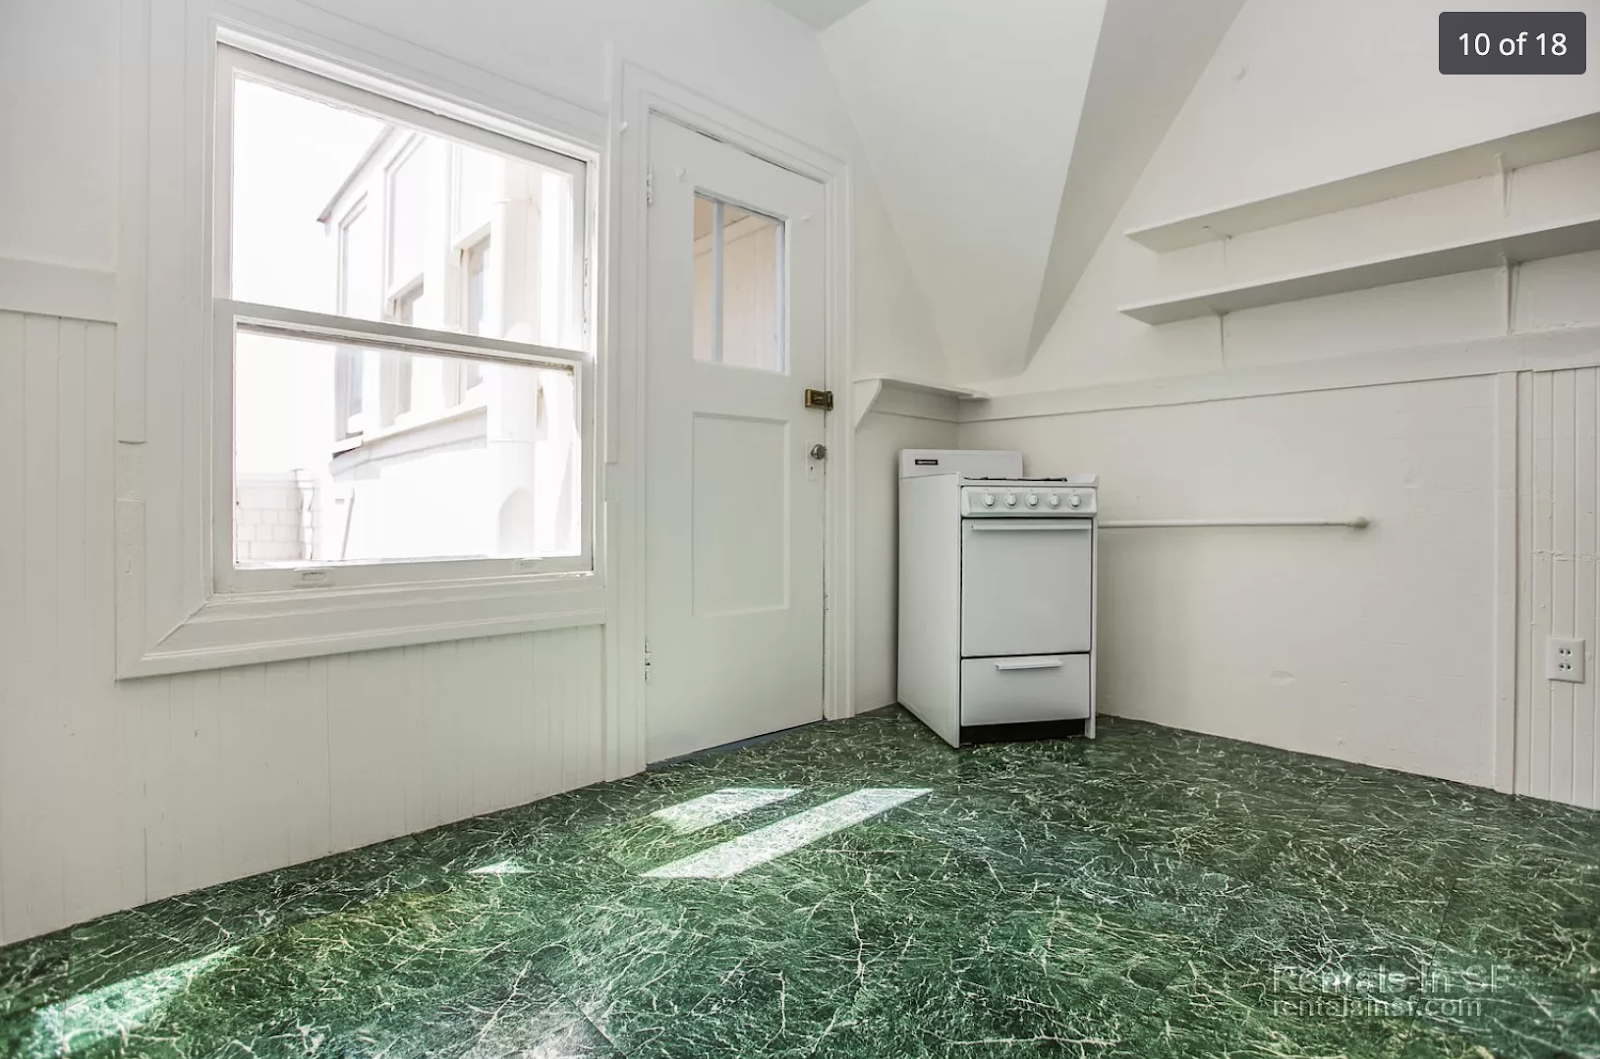 A white oven awkwardly placed in the corner of an otherwise empty room with green vinyl flooring.